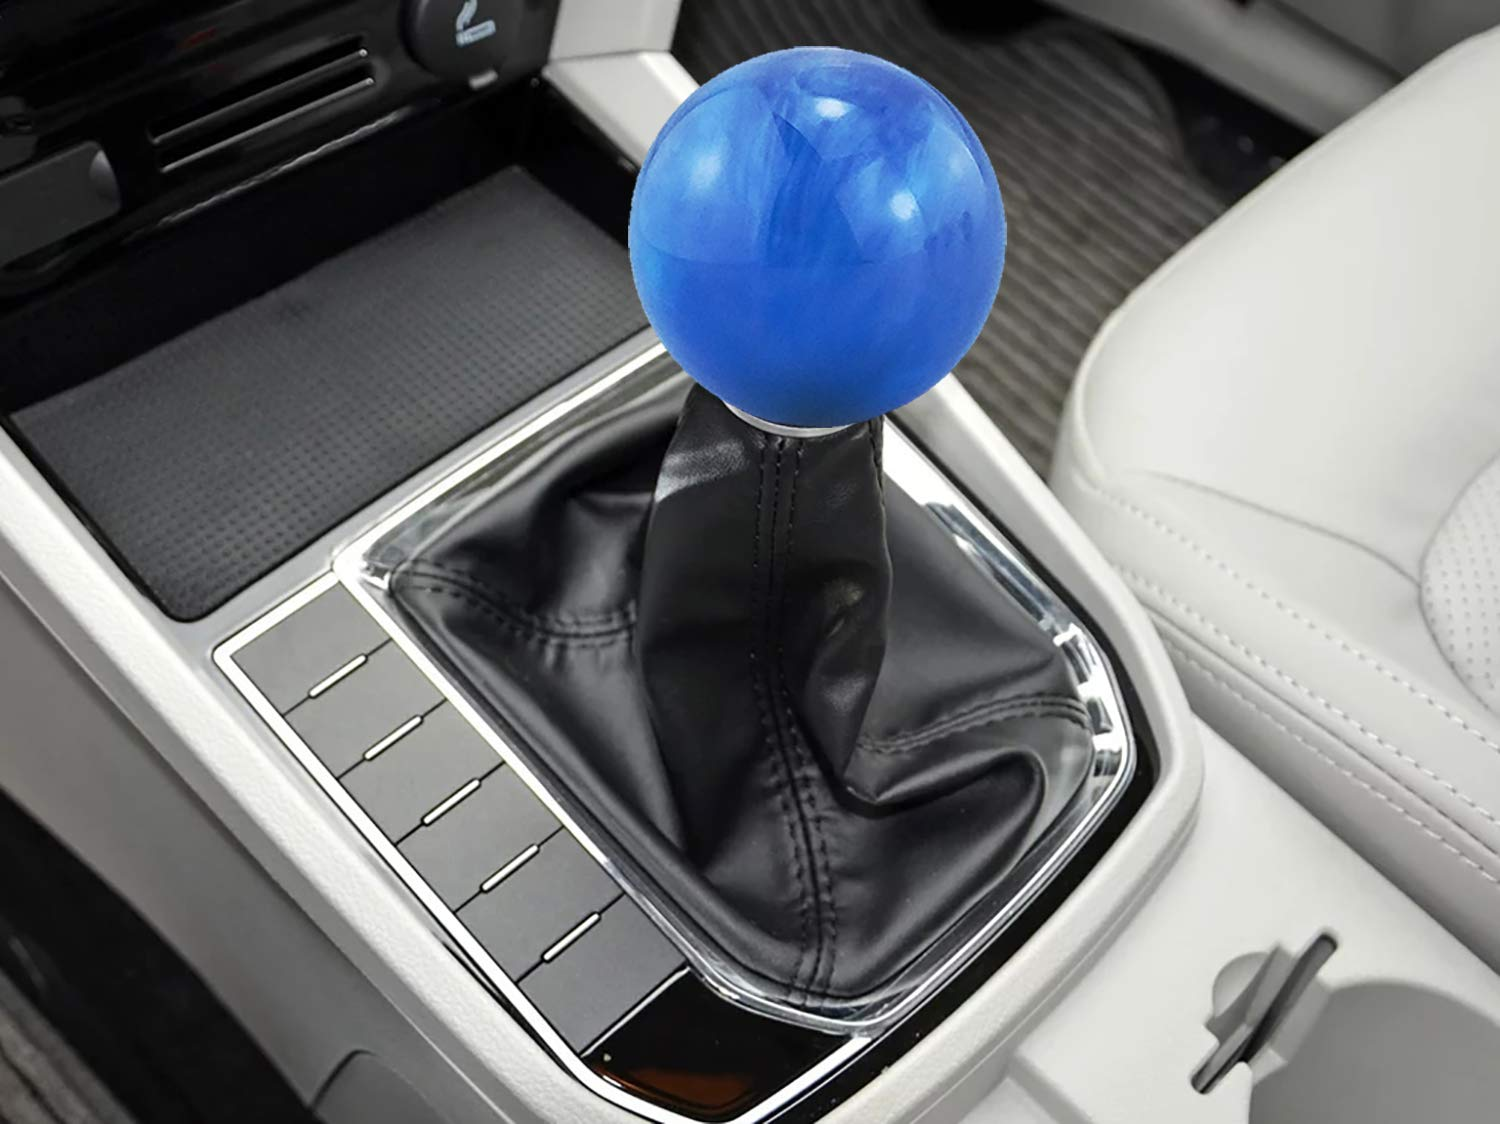 1Pcs Car Gear Shift Knob Head Auto Car Gear Shift Shifter Knob Head Car Gear Shift Knob Replacement Kit